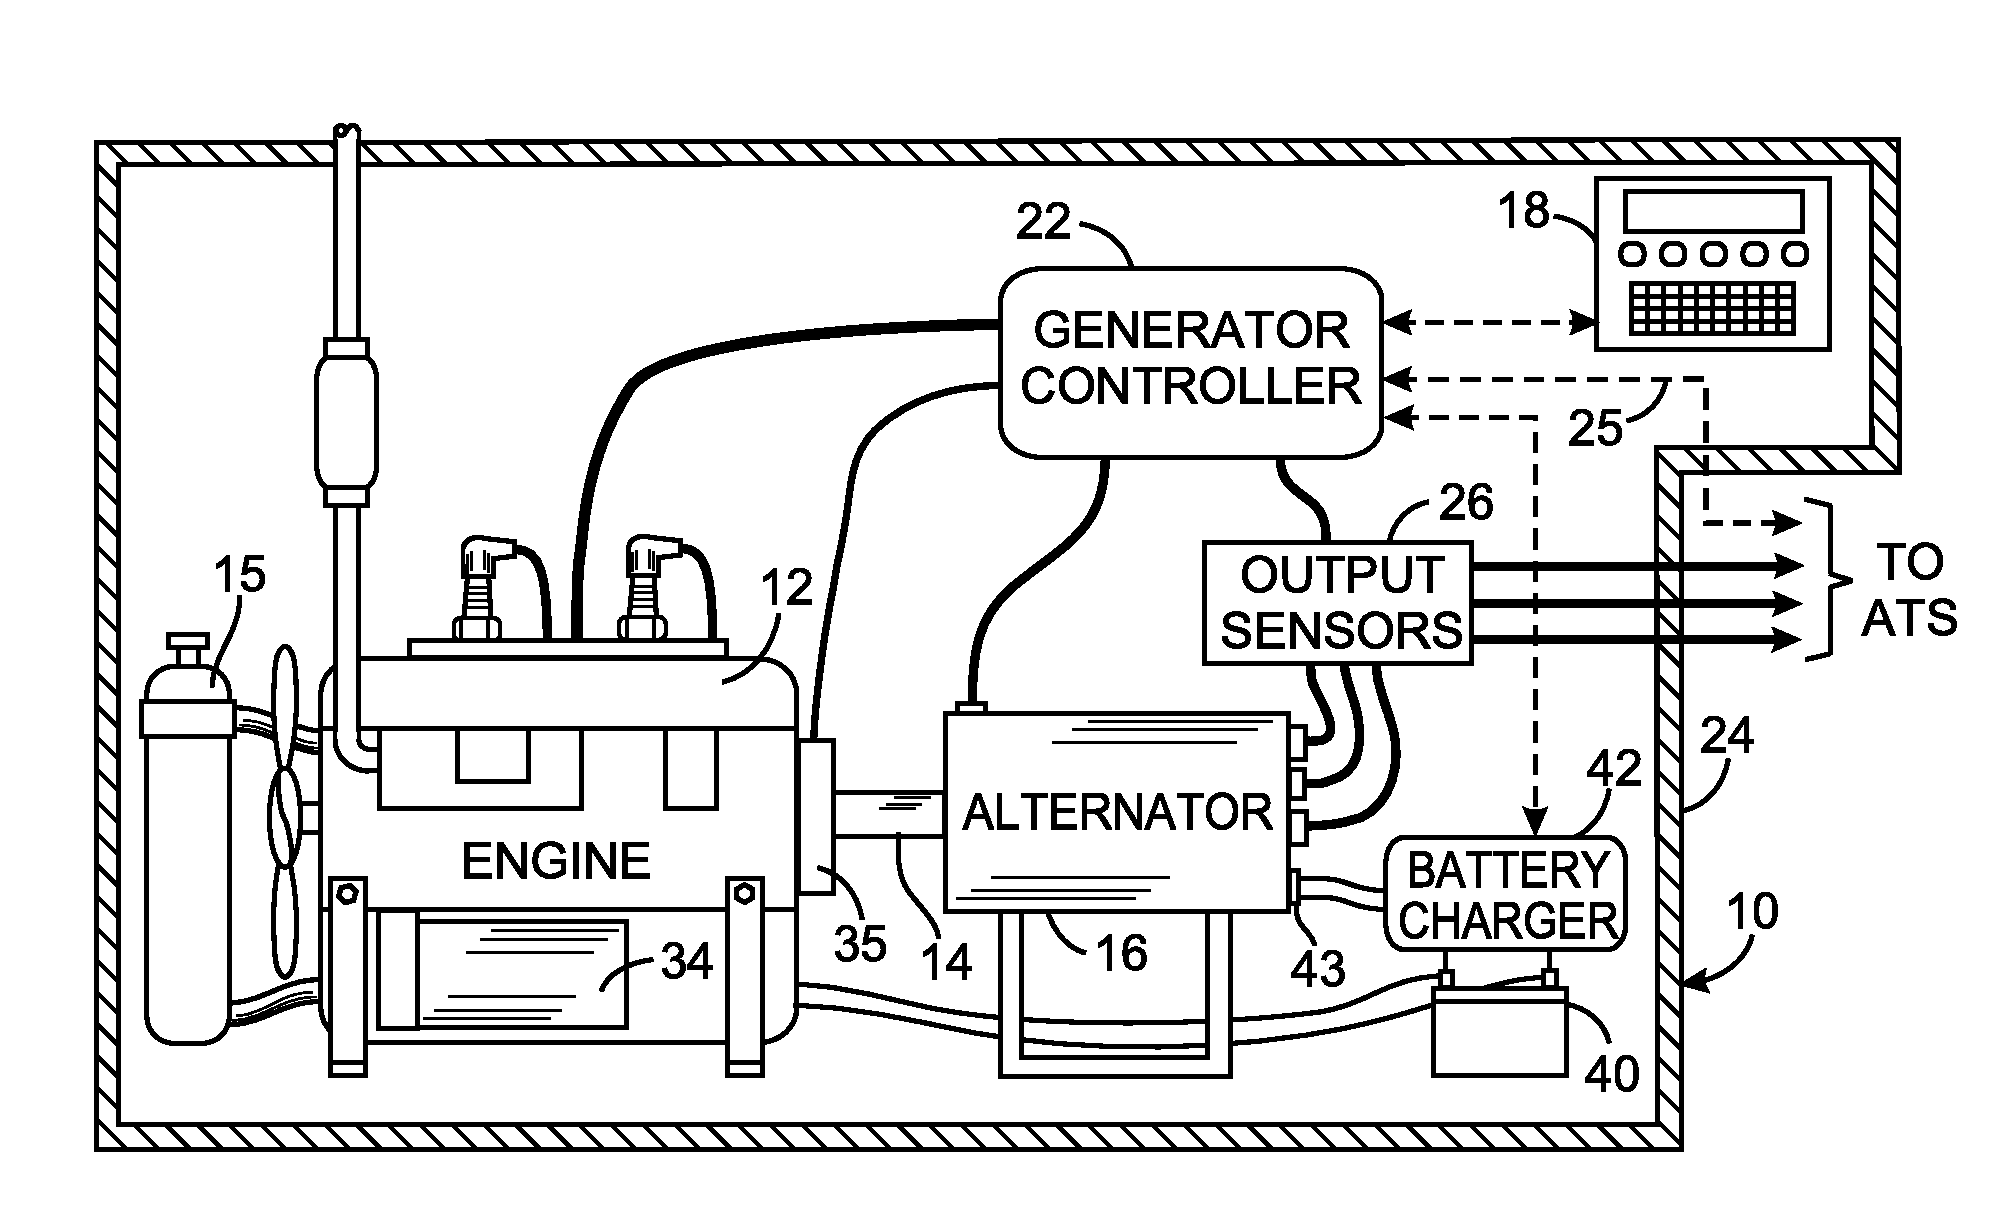 Wiring Diagram For Winpower Generator